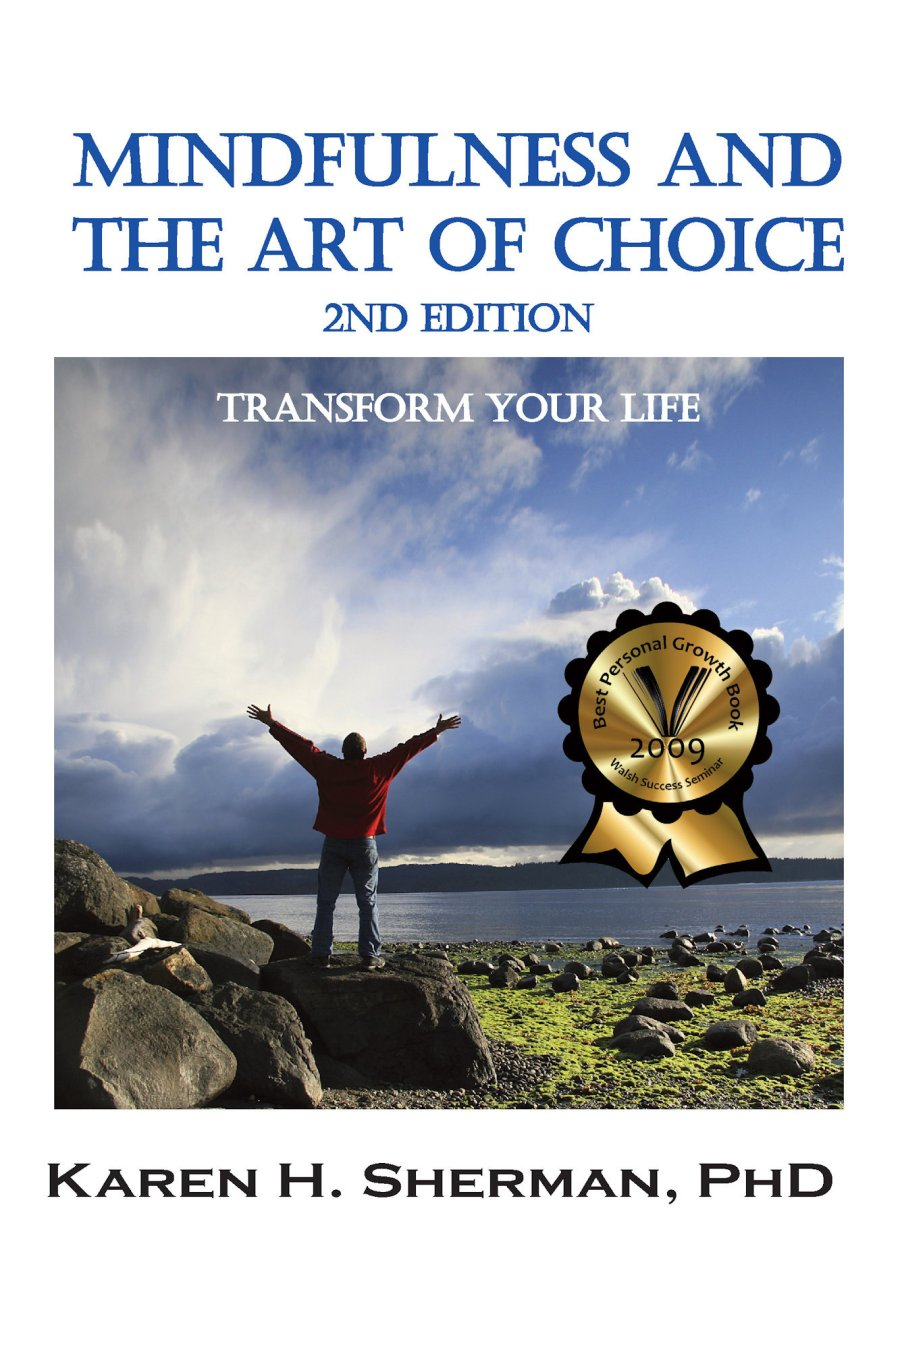 Mindfulness and The Art of Choice: Transform Your Life 978-1-61599-032-0